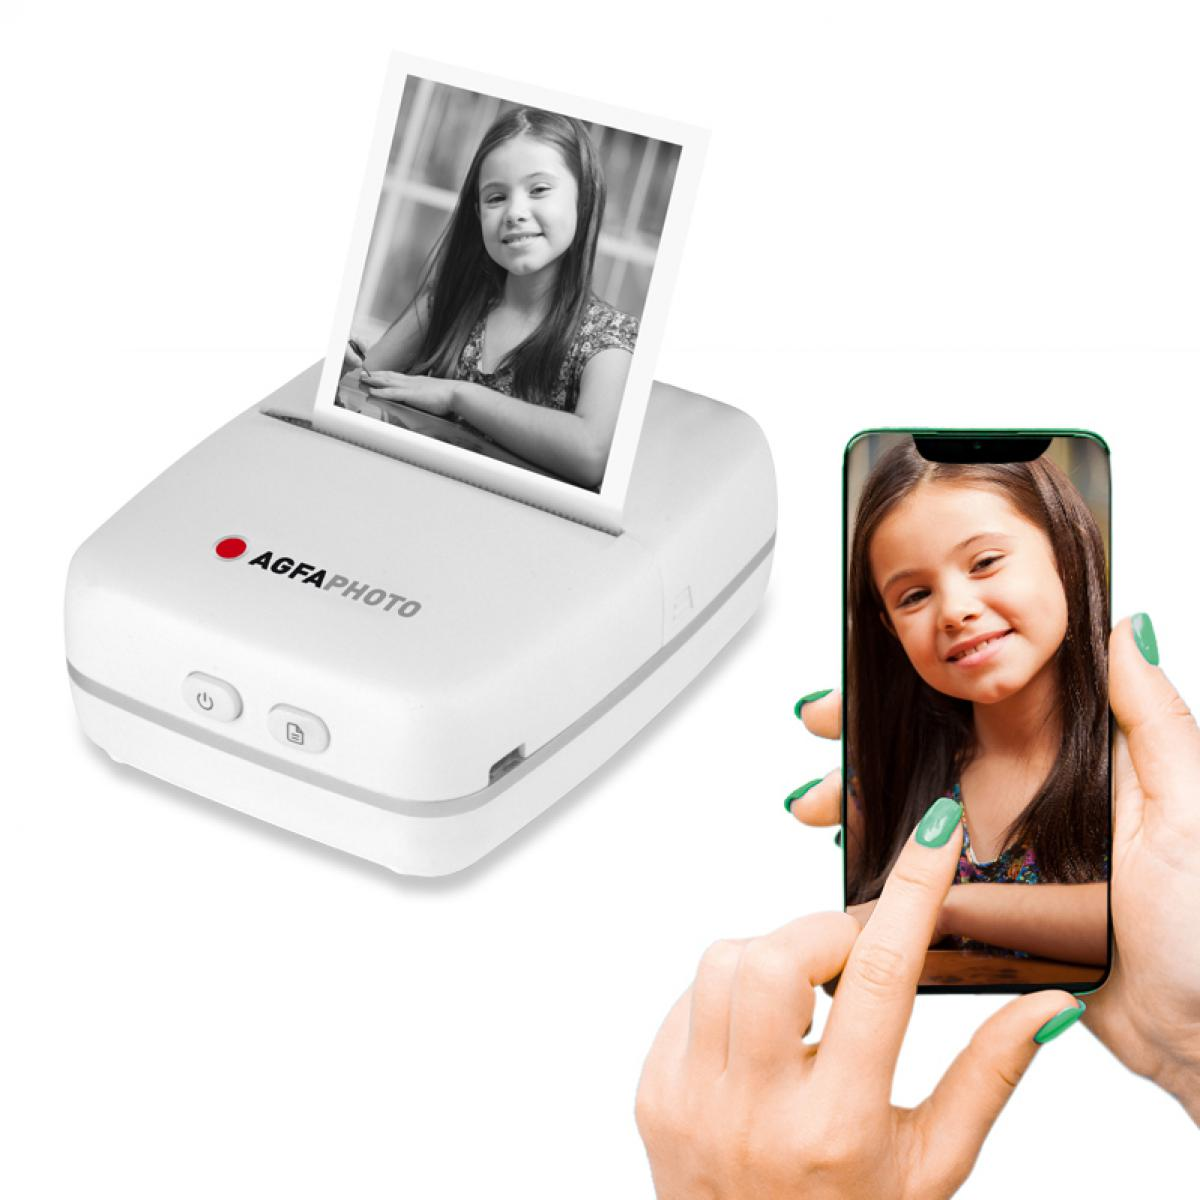 Introducing the new AGFAPHOTO Realpix Personal Bluetooth Printer